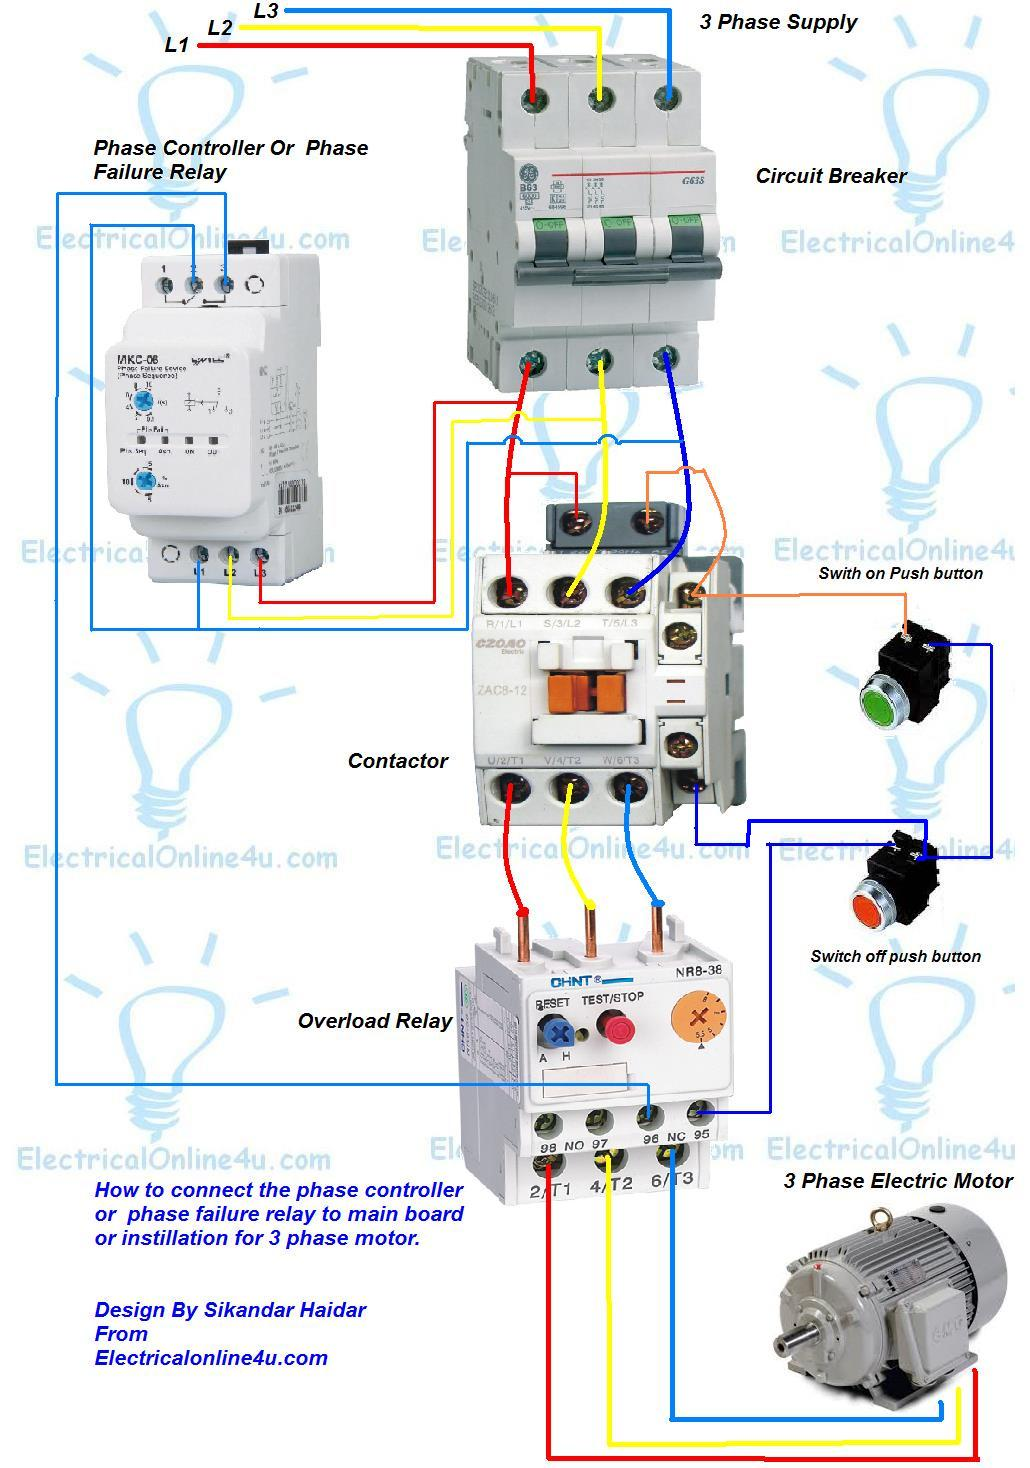 Phase%2Bfailure%2Brelay%2B %2Bphase%2Bcontroller%2Binstilaion%2Bin%2B3%2Bphase%2BMain%2Bboard%2Bor%2Bfor%2B3%2Bphase%2Bmotor phase controller wiring phase failure relay diagram electrical 3 phase motor starter wiring diagram at bakdesigns.co